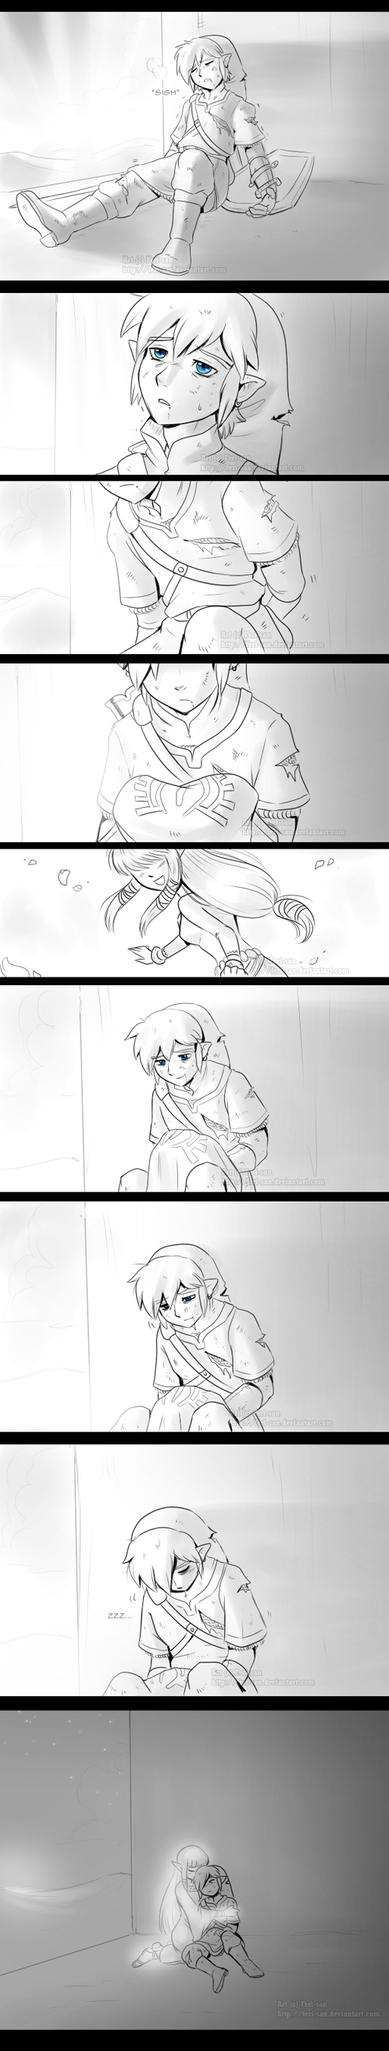 Skyward Sword - The Reason to Fight 2 by Ferisae